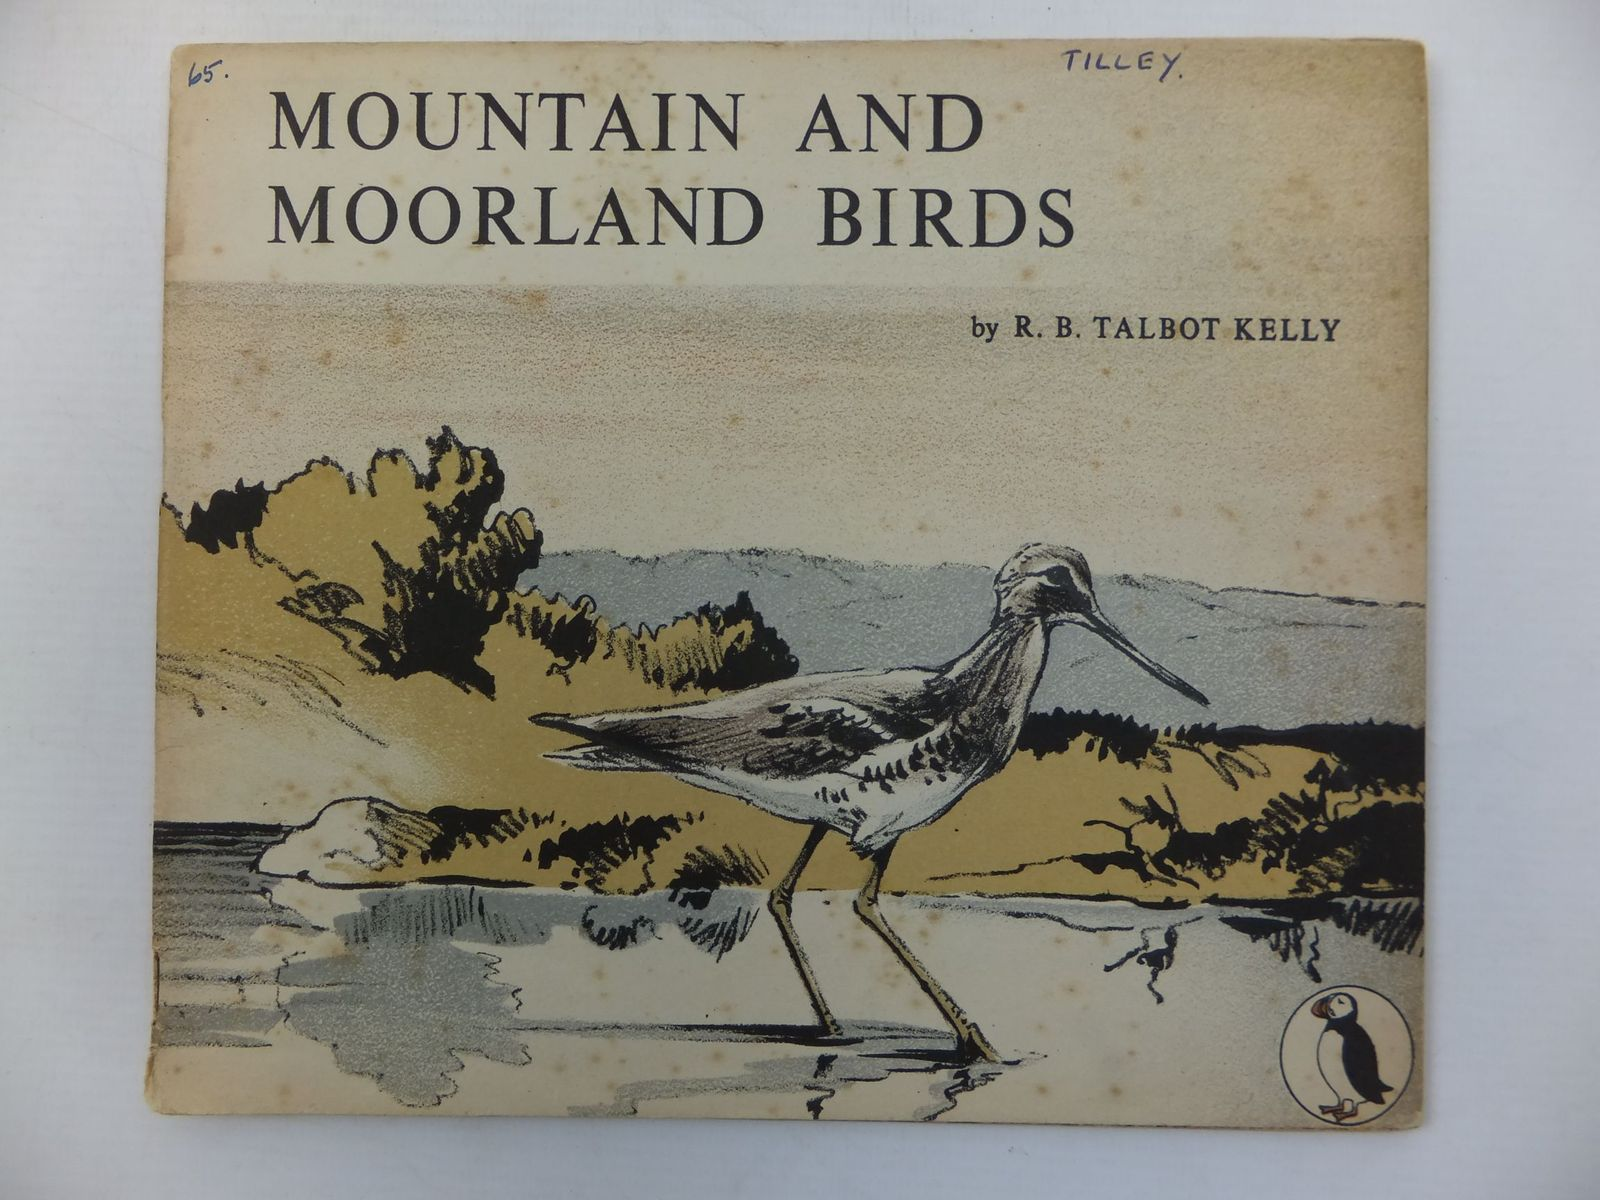 Photo of MOUNTAIN AND MOORLAND BIRDS written by Kelly, R.B. Talbot illustrated by Kelly, R.B. Talbot published by Penguin (STOCK CODE: 1708046)  for sale by Stella & Rose's Books